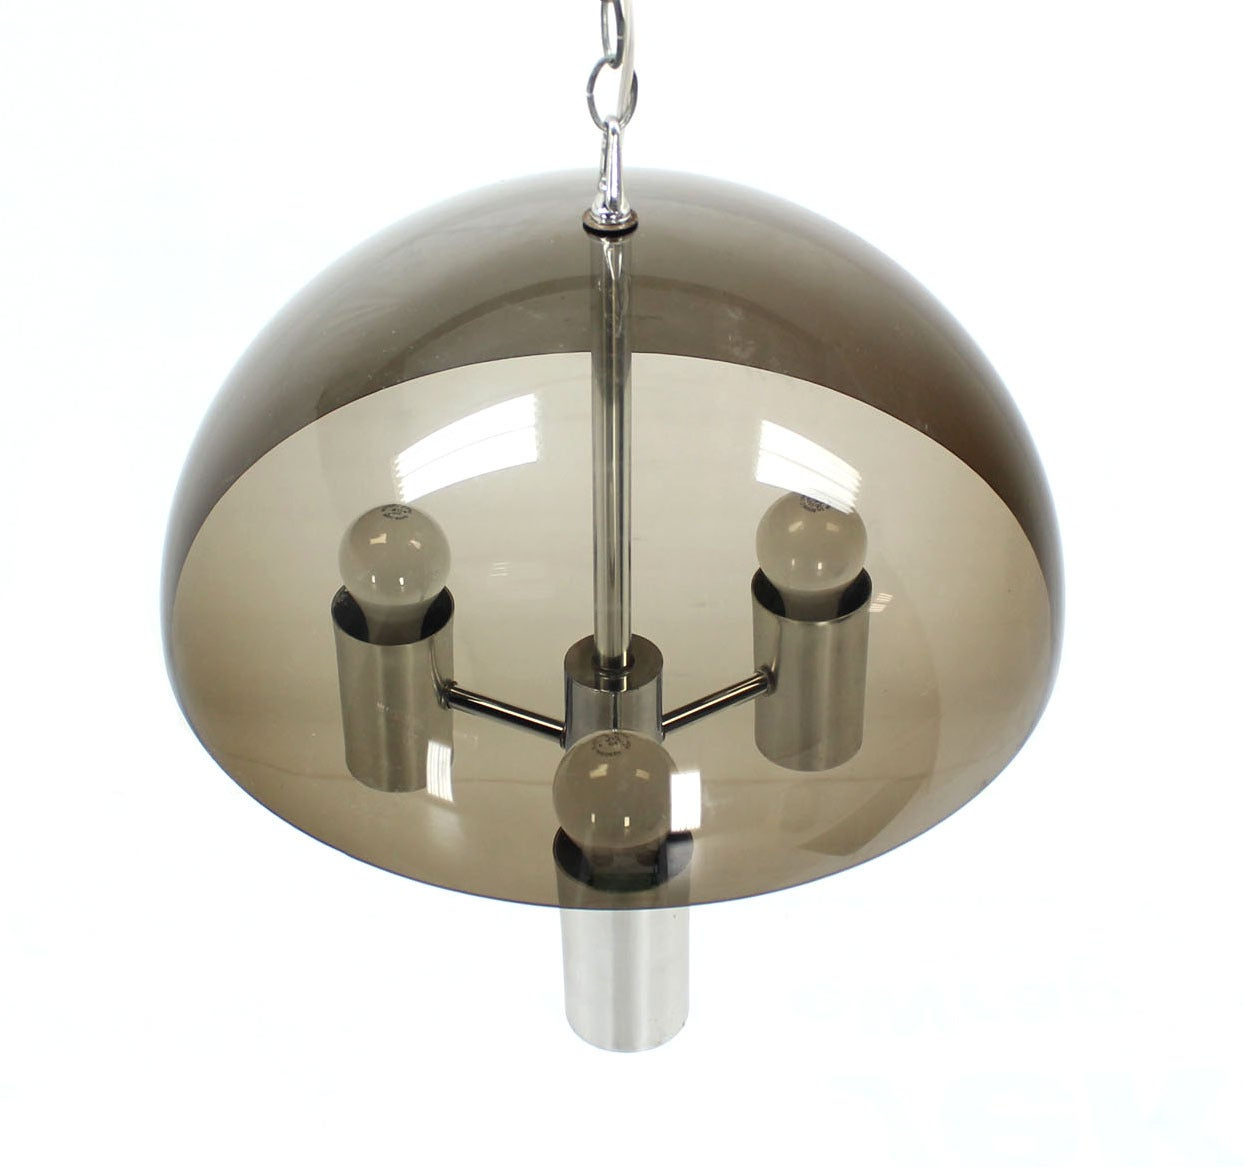 Smoked dome chrome mid century modern light fixture for for Mid century modern pendant light fixtures